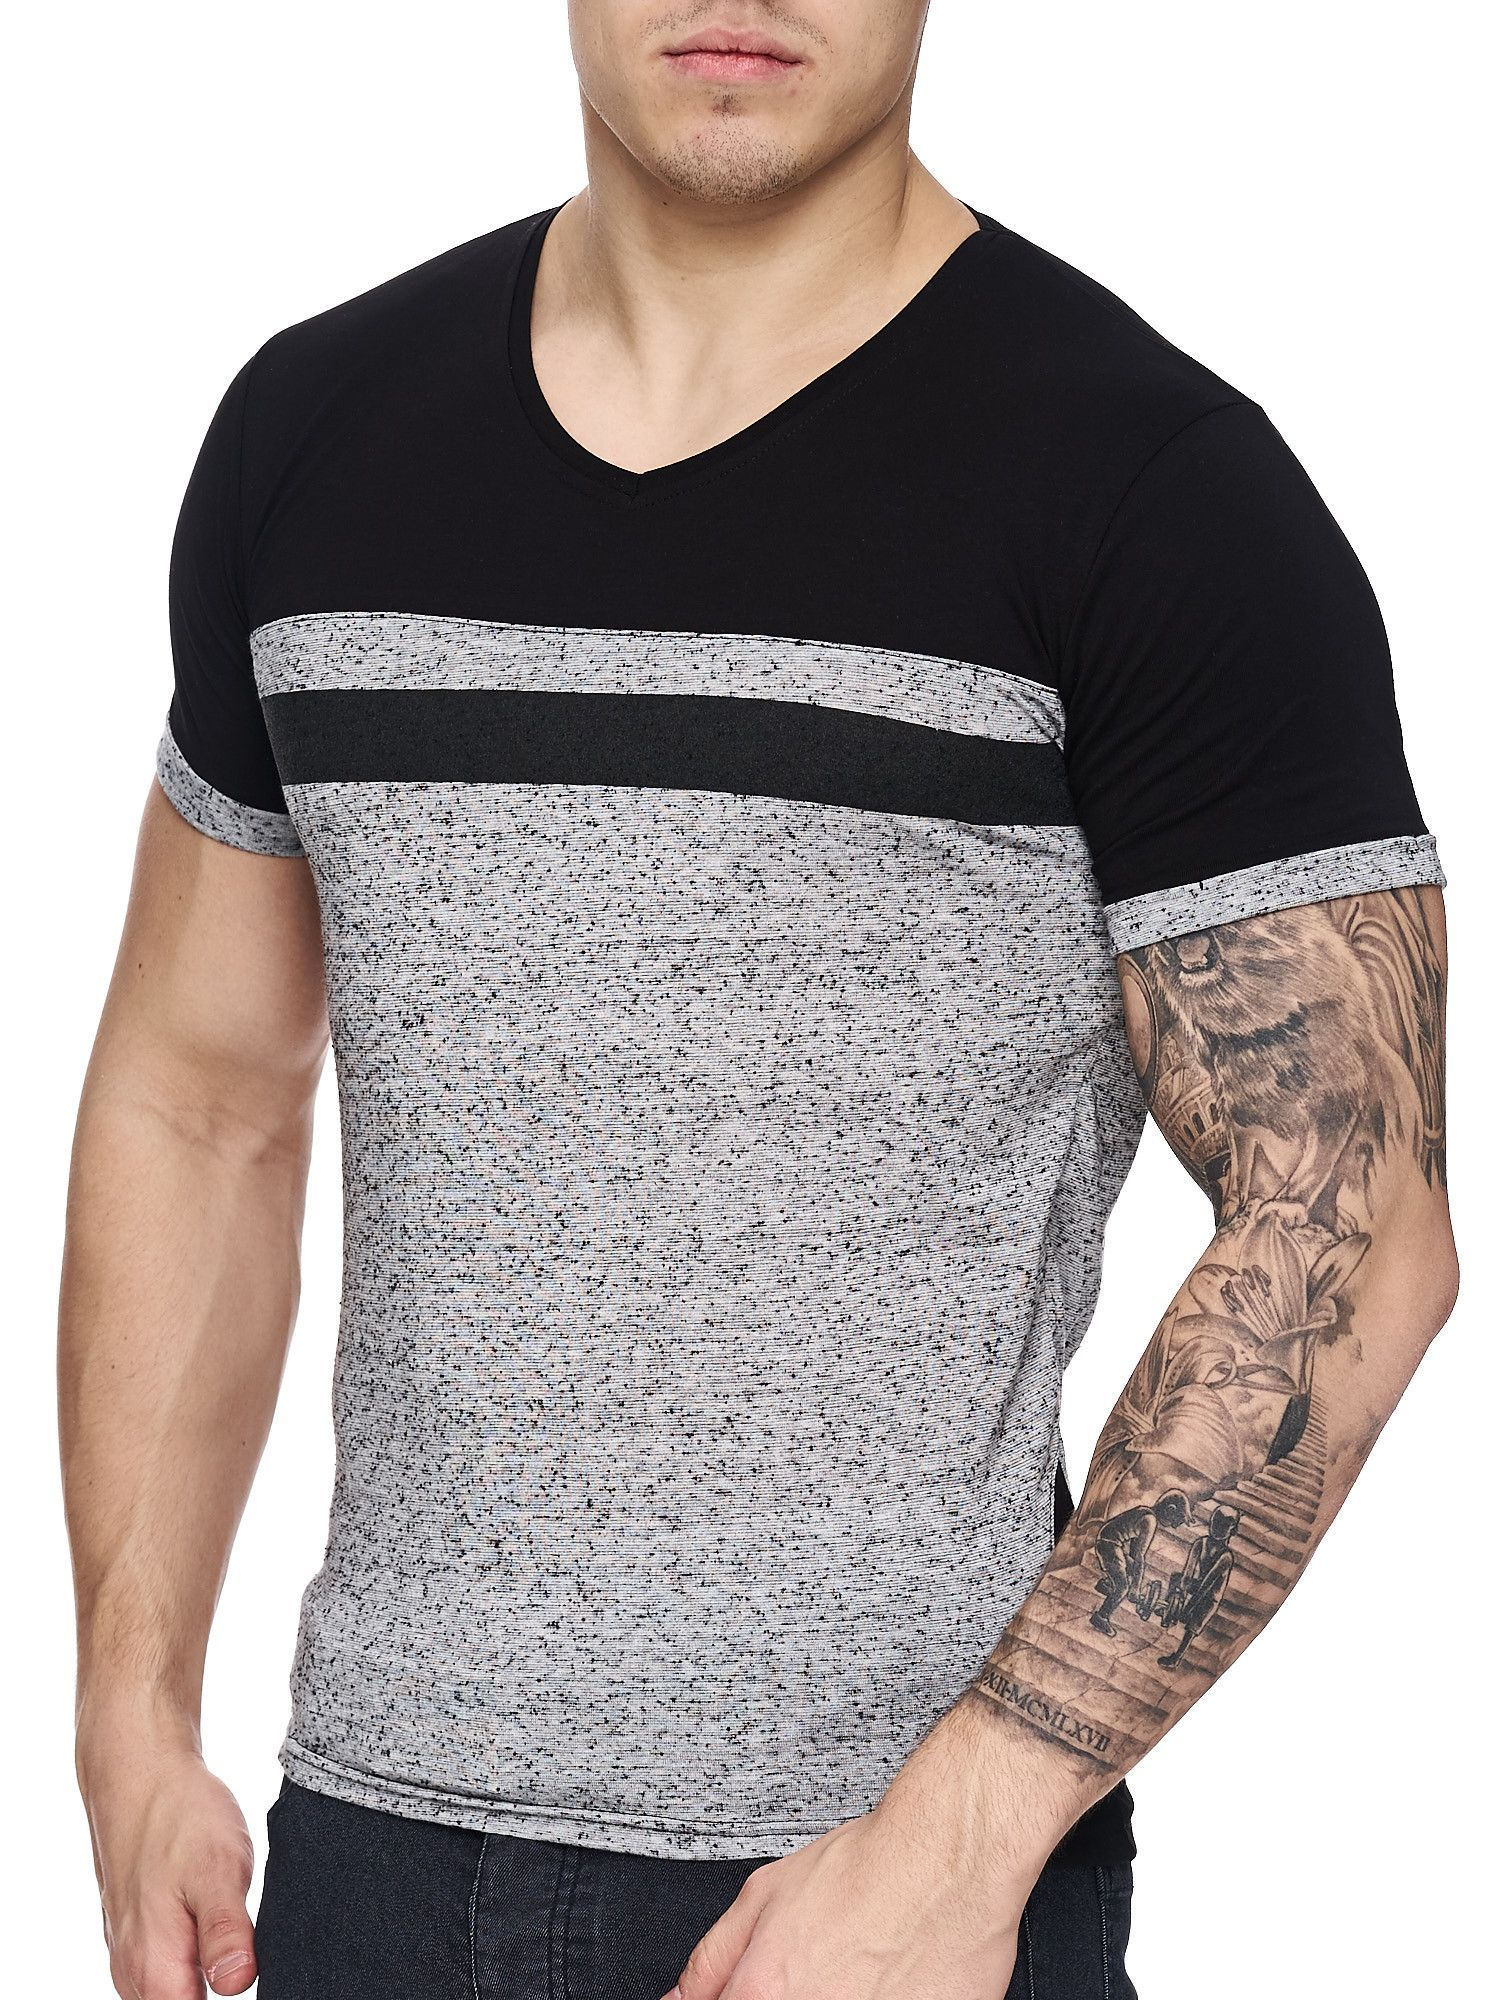 Nice body   muscle fitted Graphic T-shirt. Please use the size chart to  pick the correct size for you.   FORM   BODY   MUSCLE FITTED   70% Cotton  30% Poly e407e4c51e181